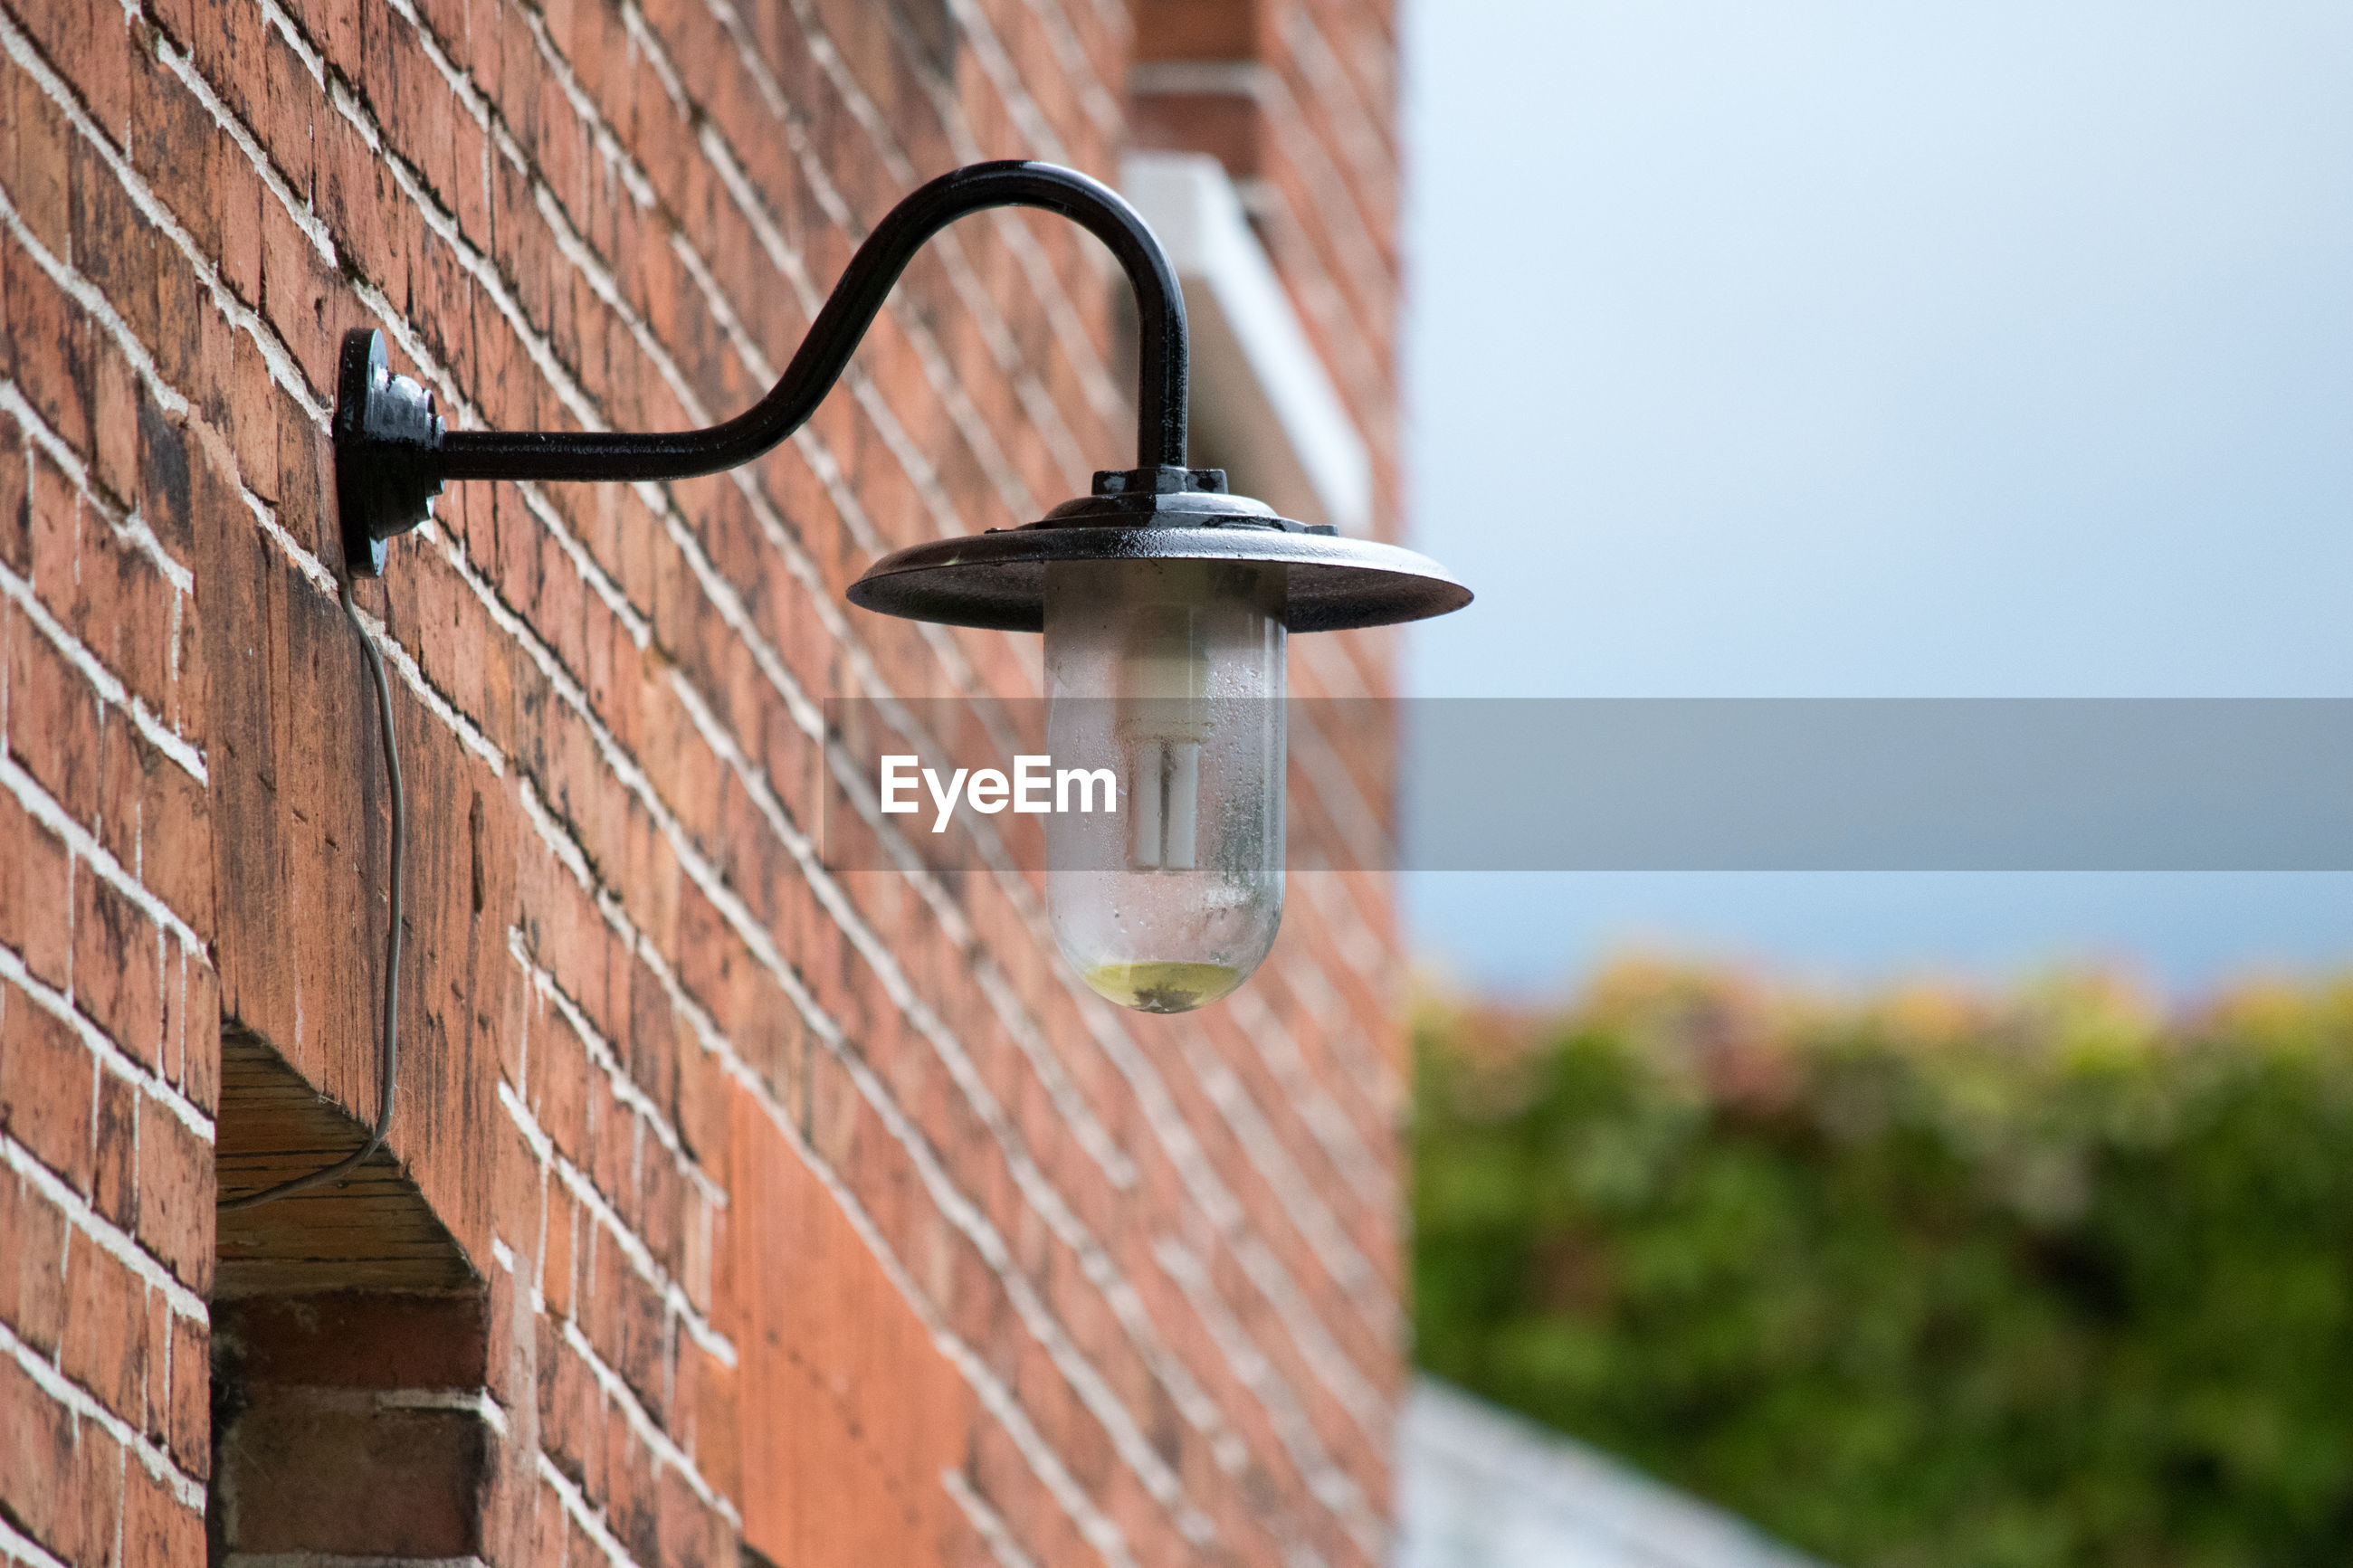 Low angle view of lighting equipment on brick wall against clear sky